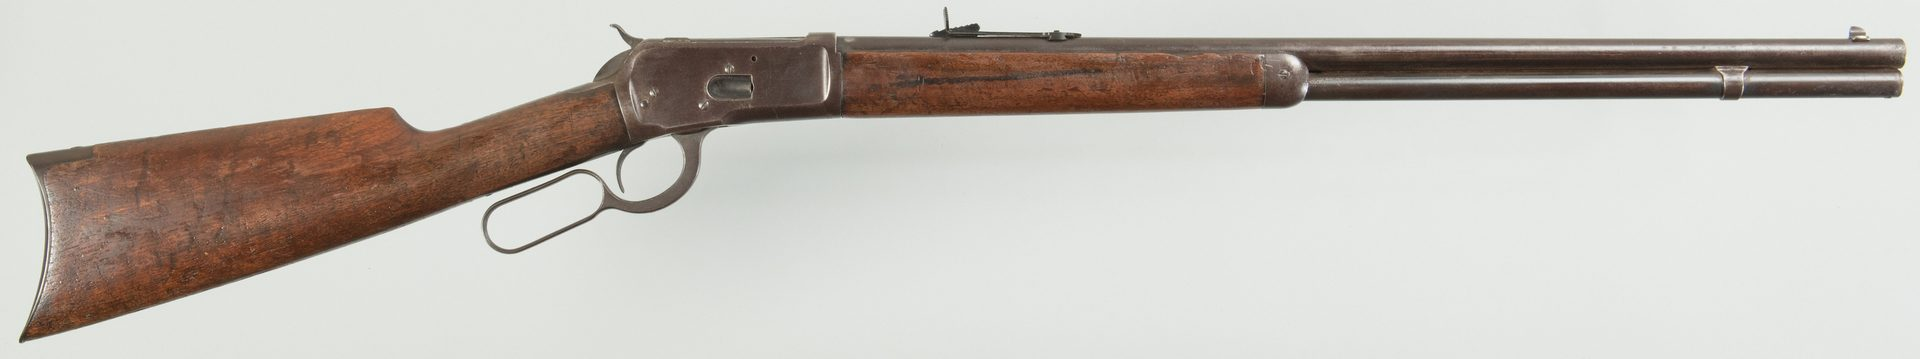 Lot 823: Winchester Model 1892, 38-40 Win Lever Action Rifle